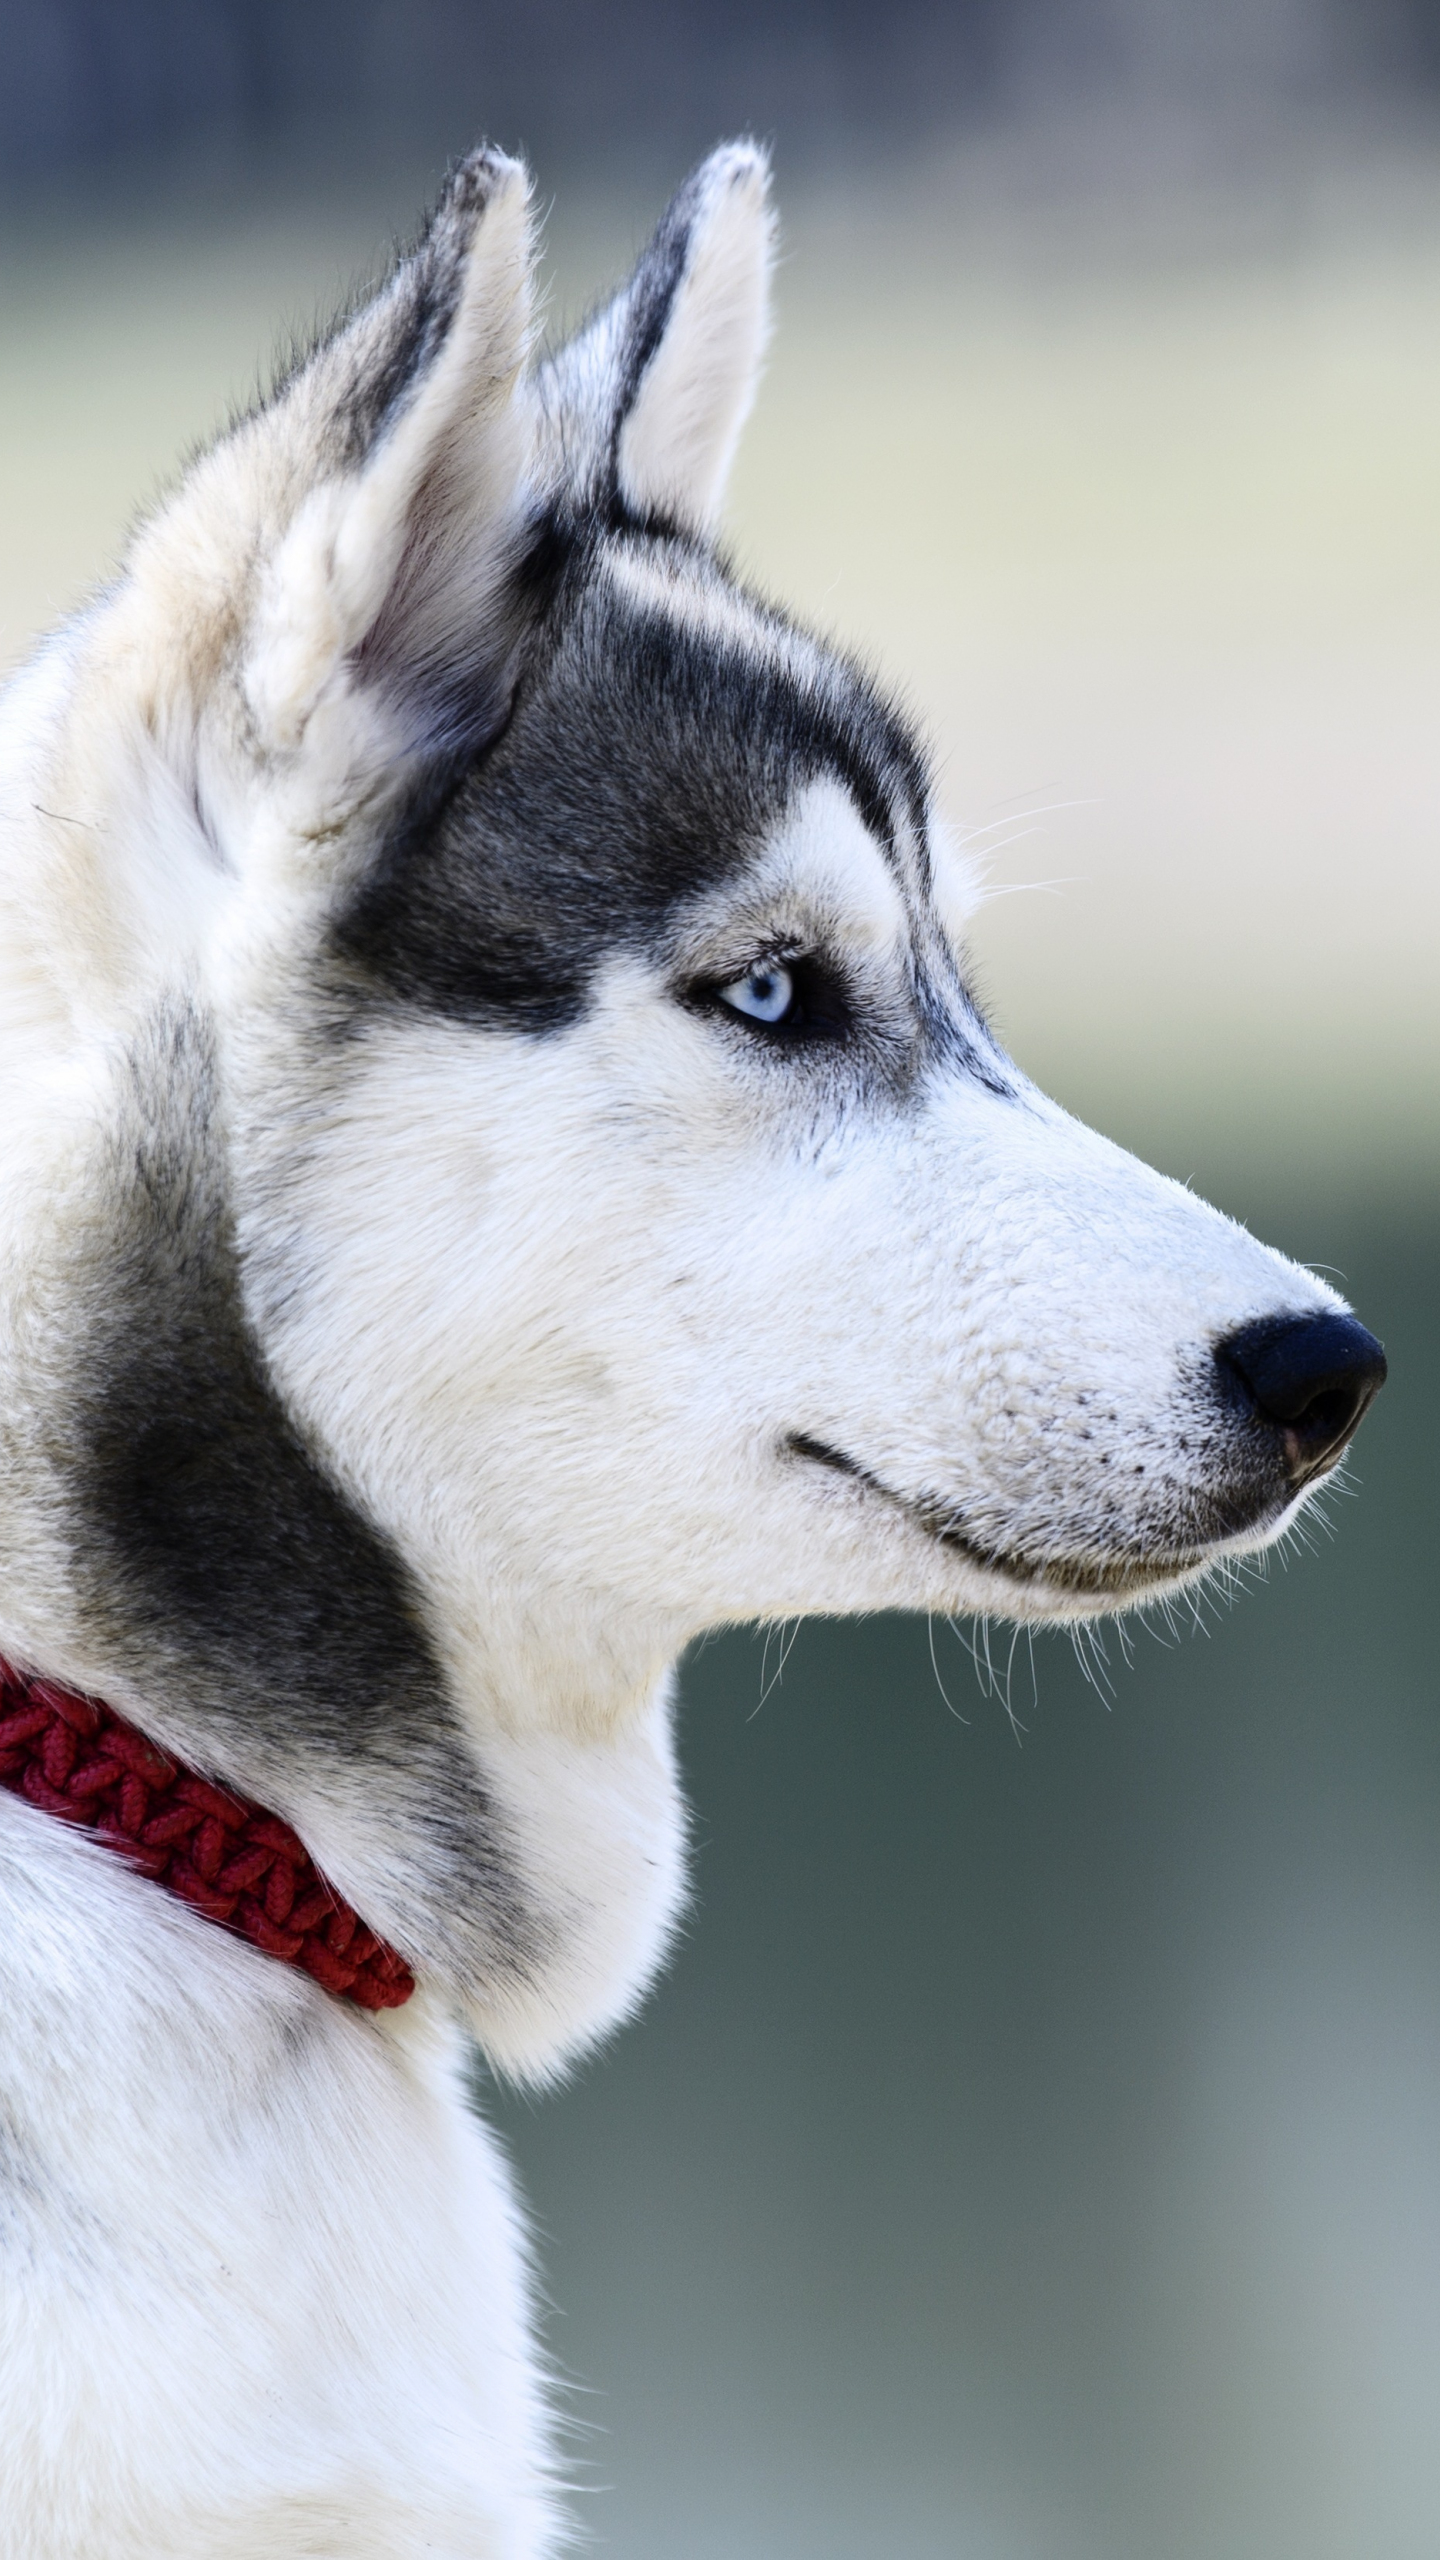 Download 1440x2560 Wallpaper Husky  Dog  Muzzle  White